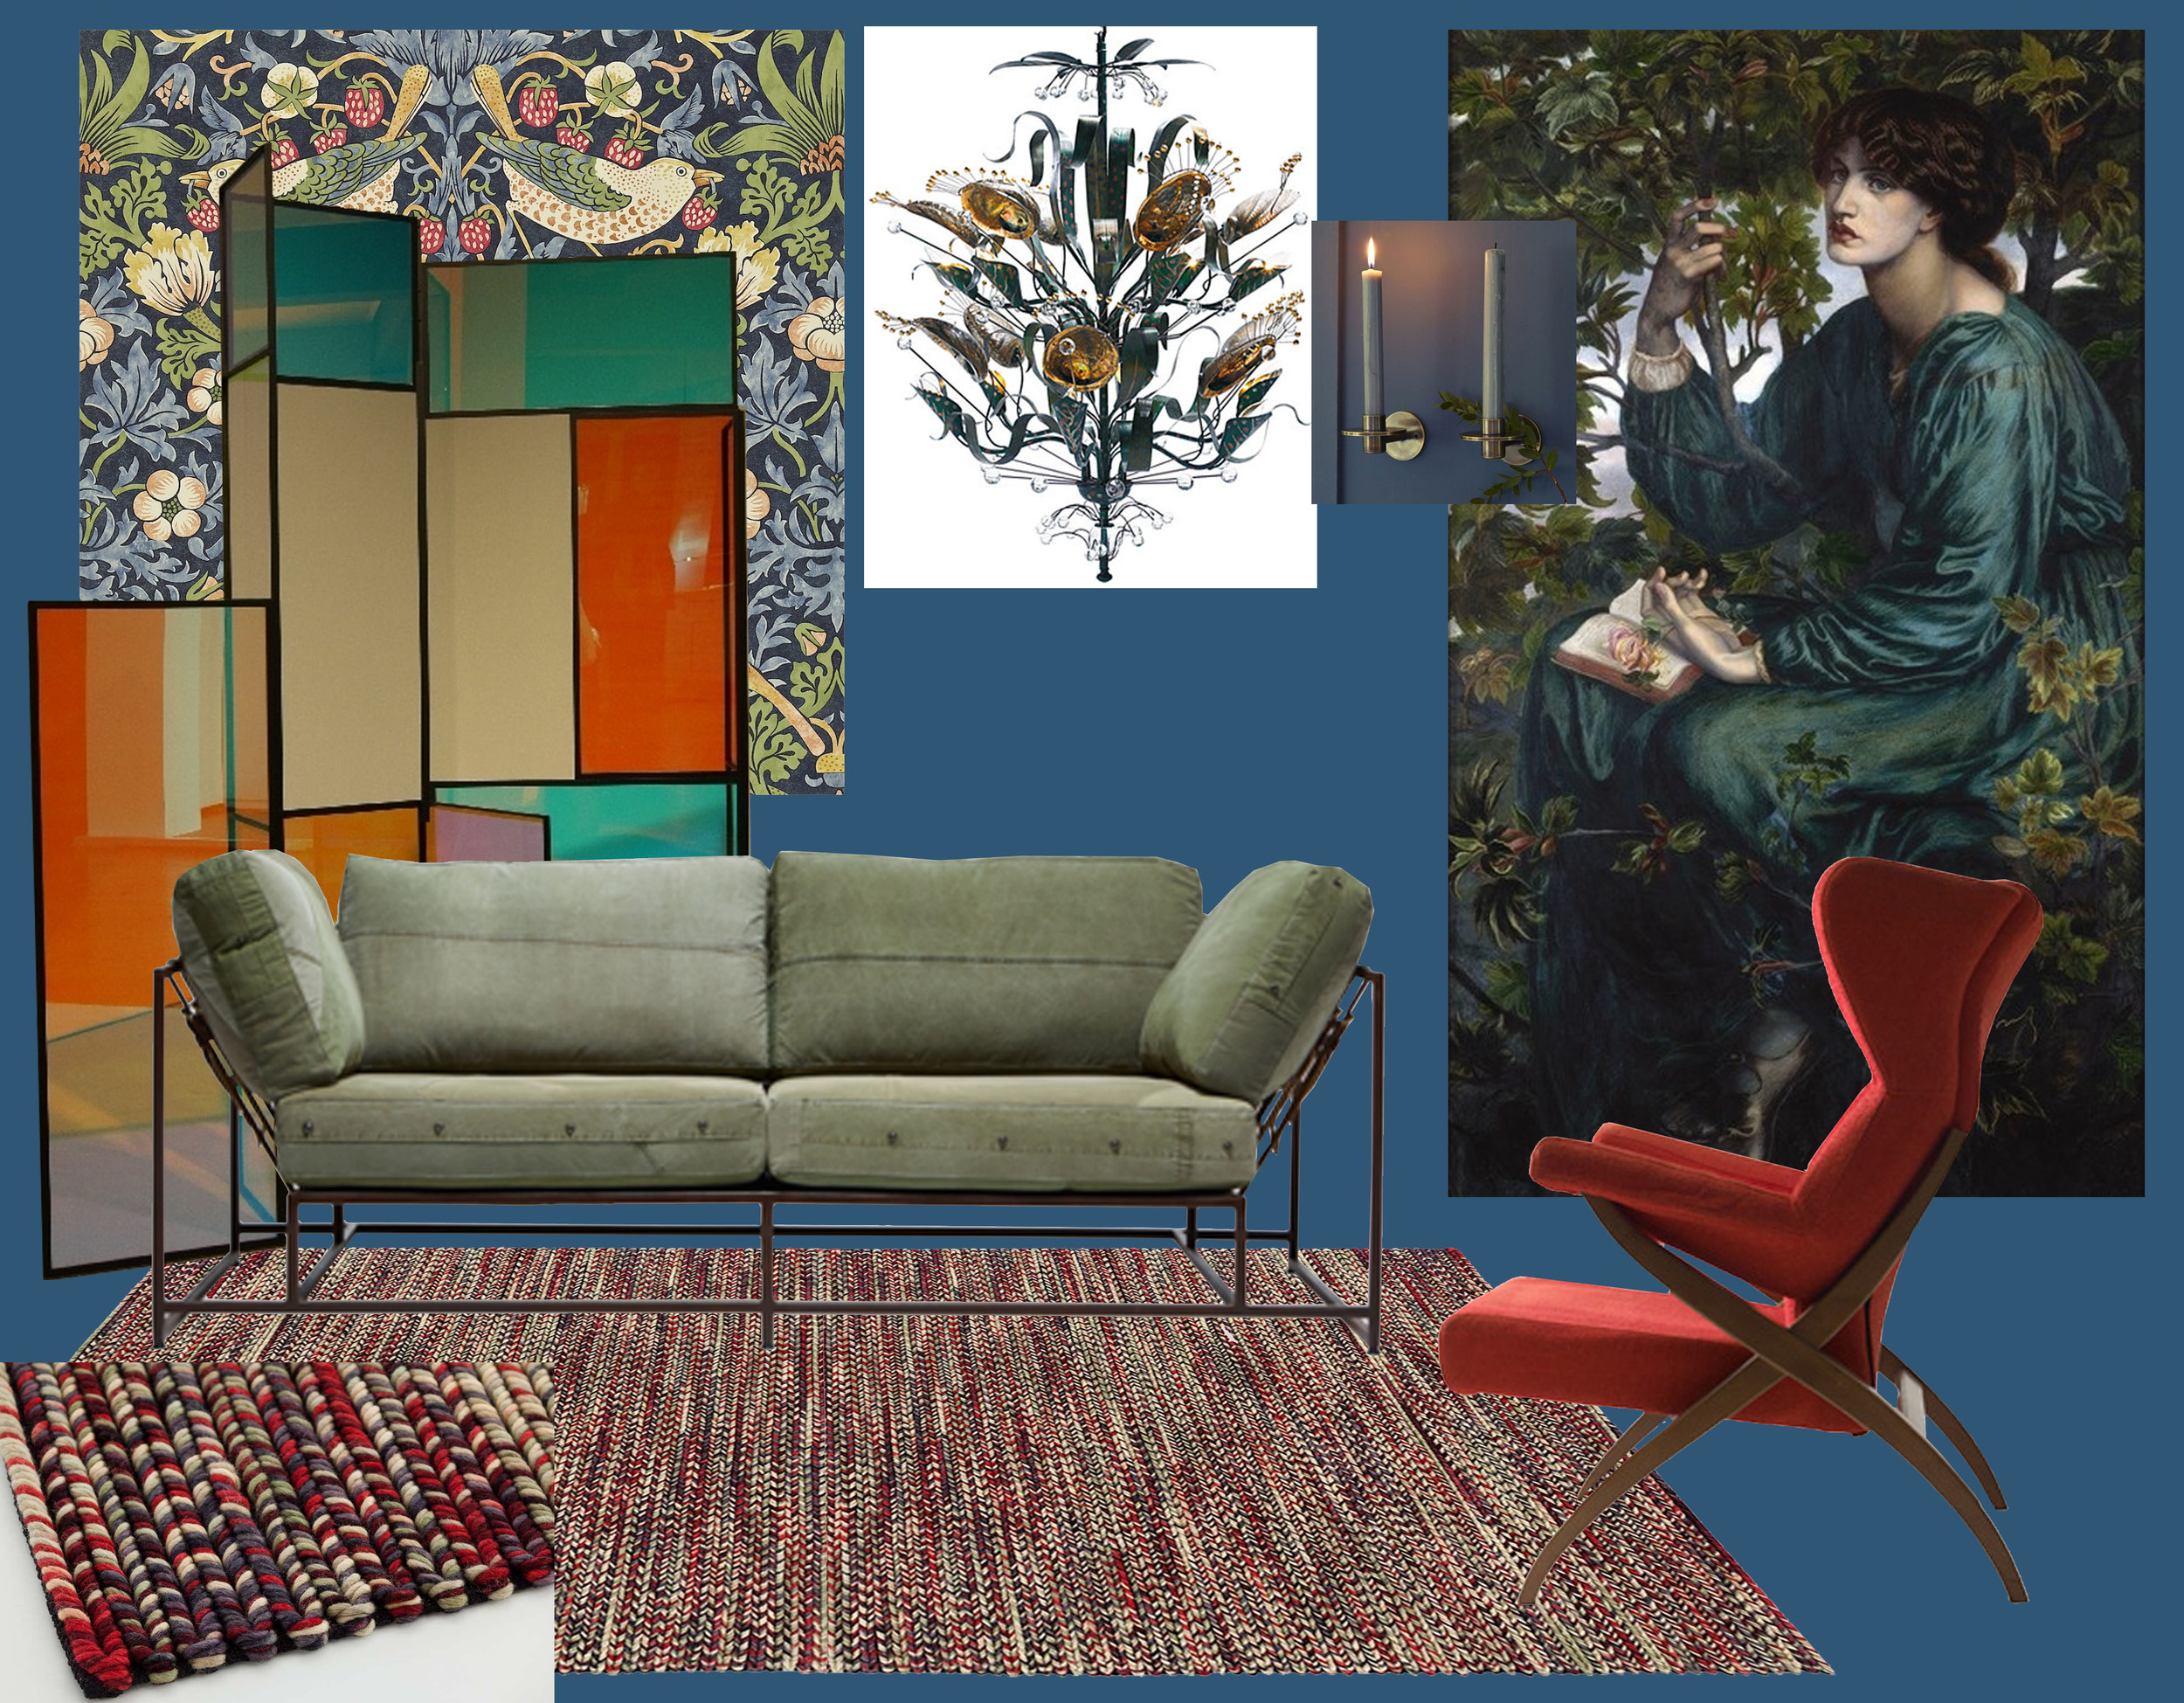 wallpaper Strawberry Thief  William Morris  - screendivider  Camilla Richter  - Military Canvas two seat sofa  Stephen Kenn  - armchair Fiorenza by Franco Albini  Nilufar  - painting of Dante Rossetti, printed in big size - Abalone chandelier by Tony Duquette  Baker  -  wall candle holder Leland  Rowen & Wren  - rug Varese  Gan-rugs